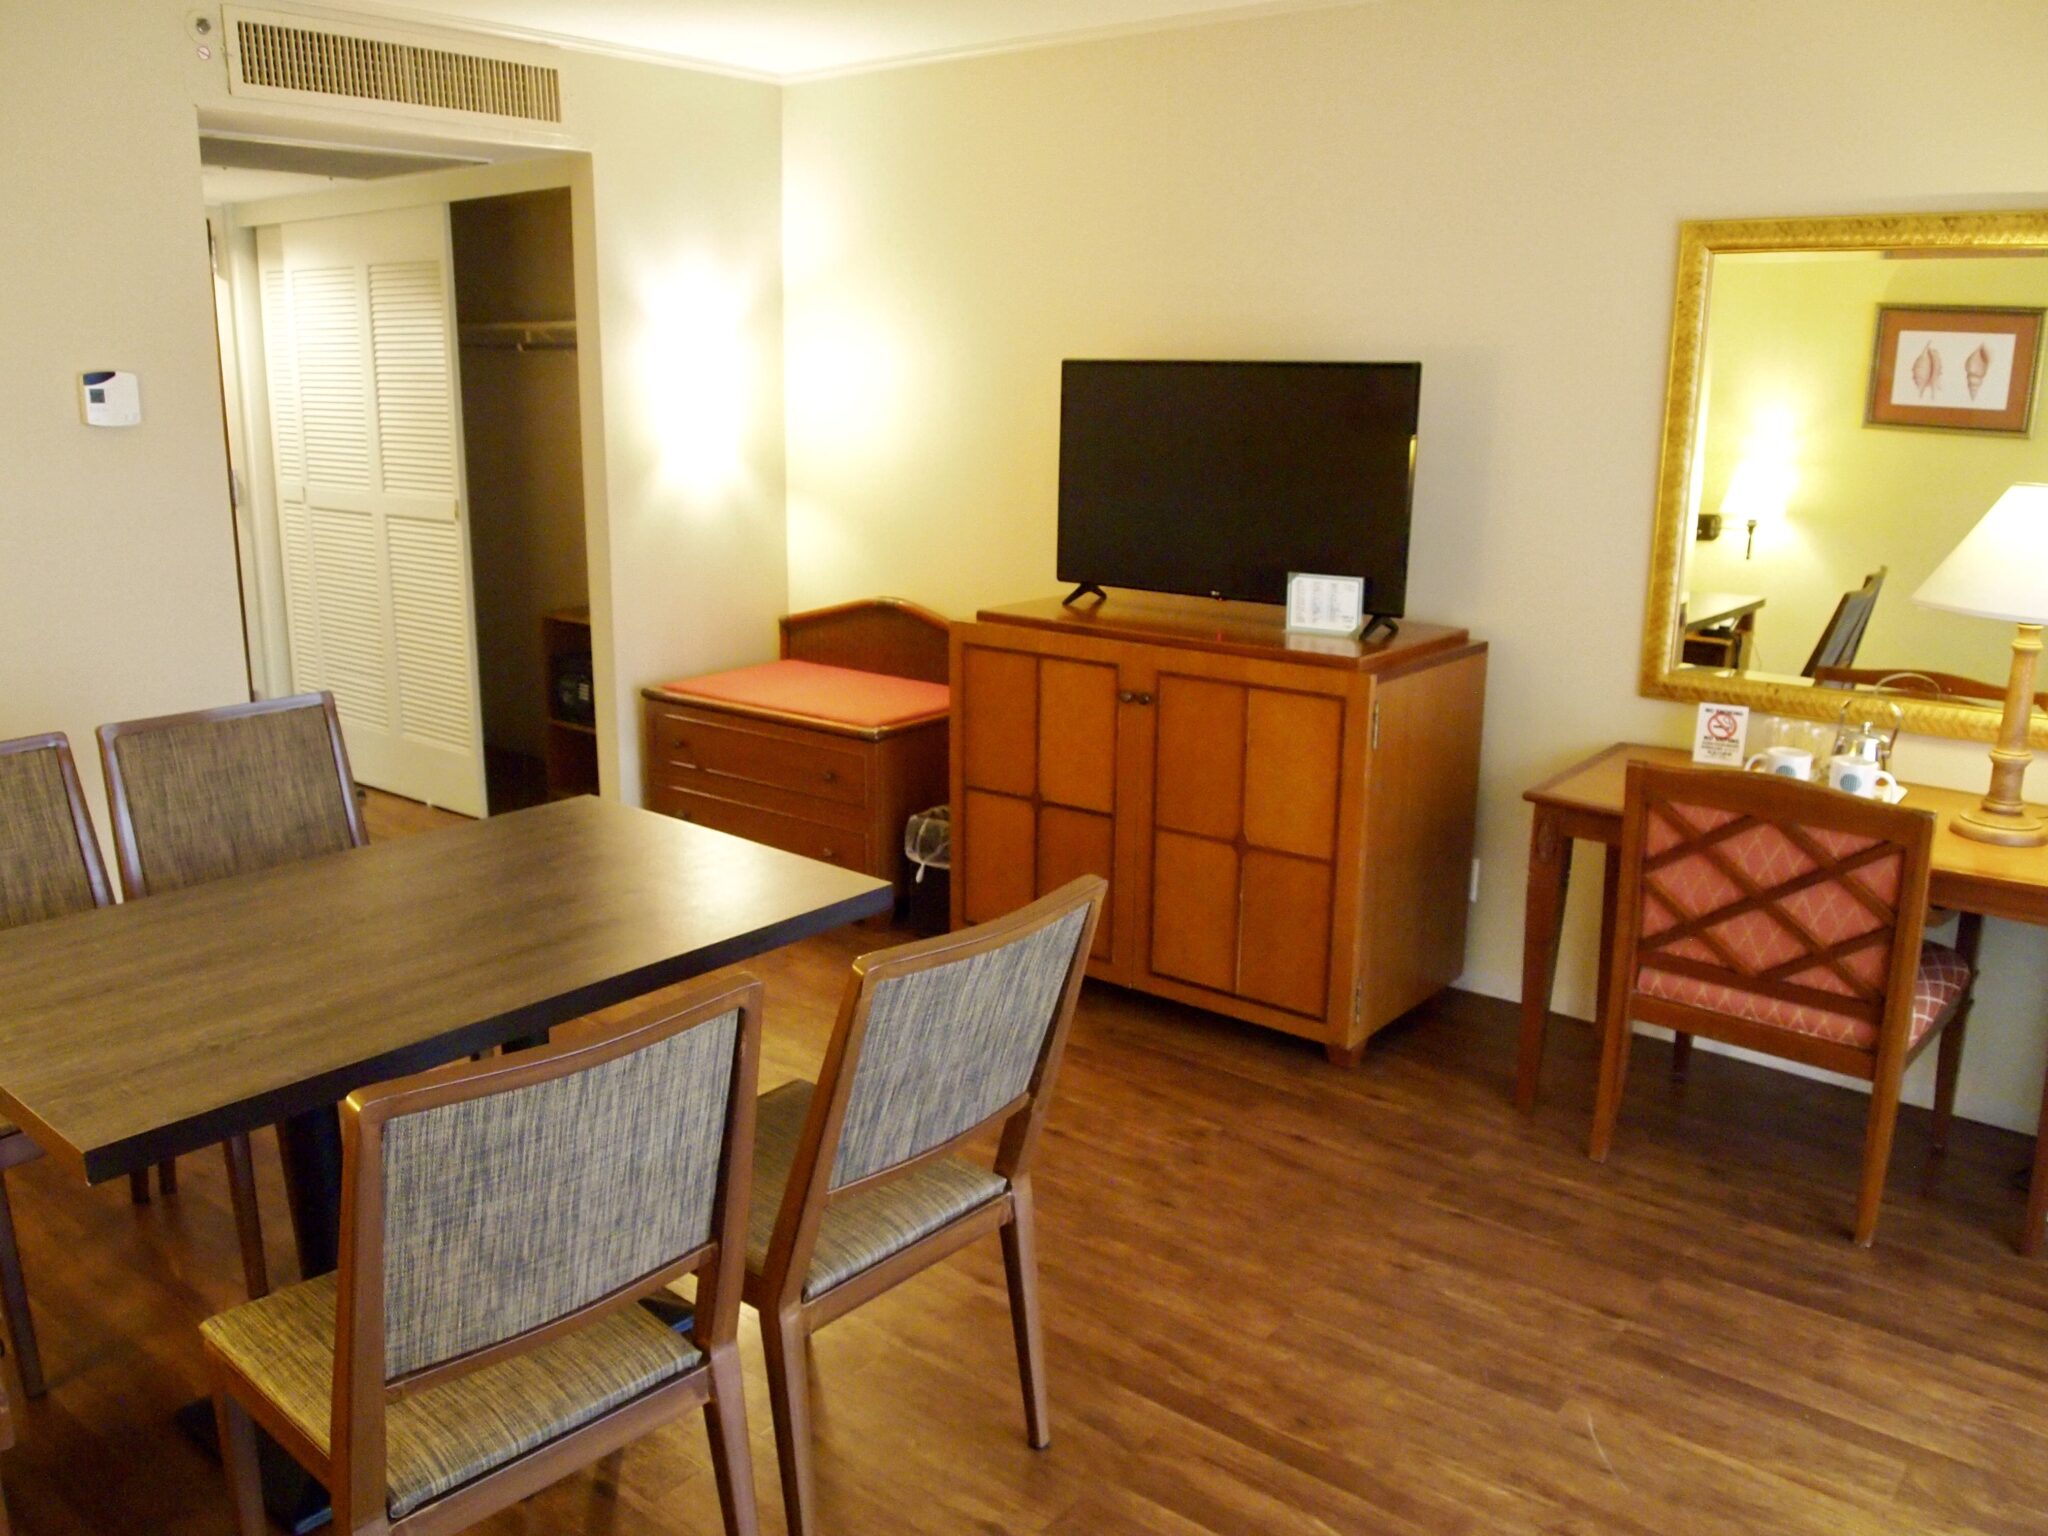 【Rooms】New Room Type Now Available for Long Stay Guests!